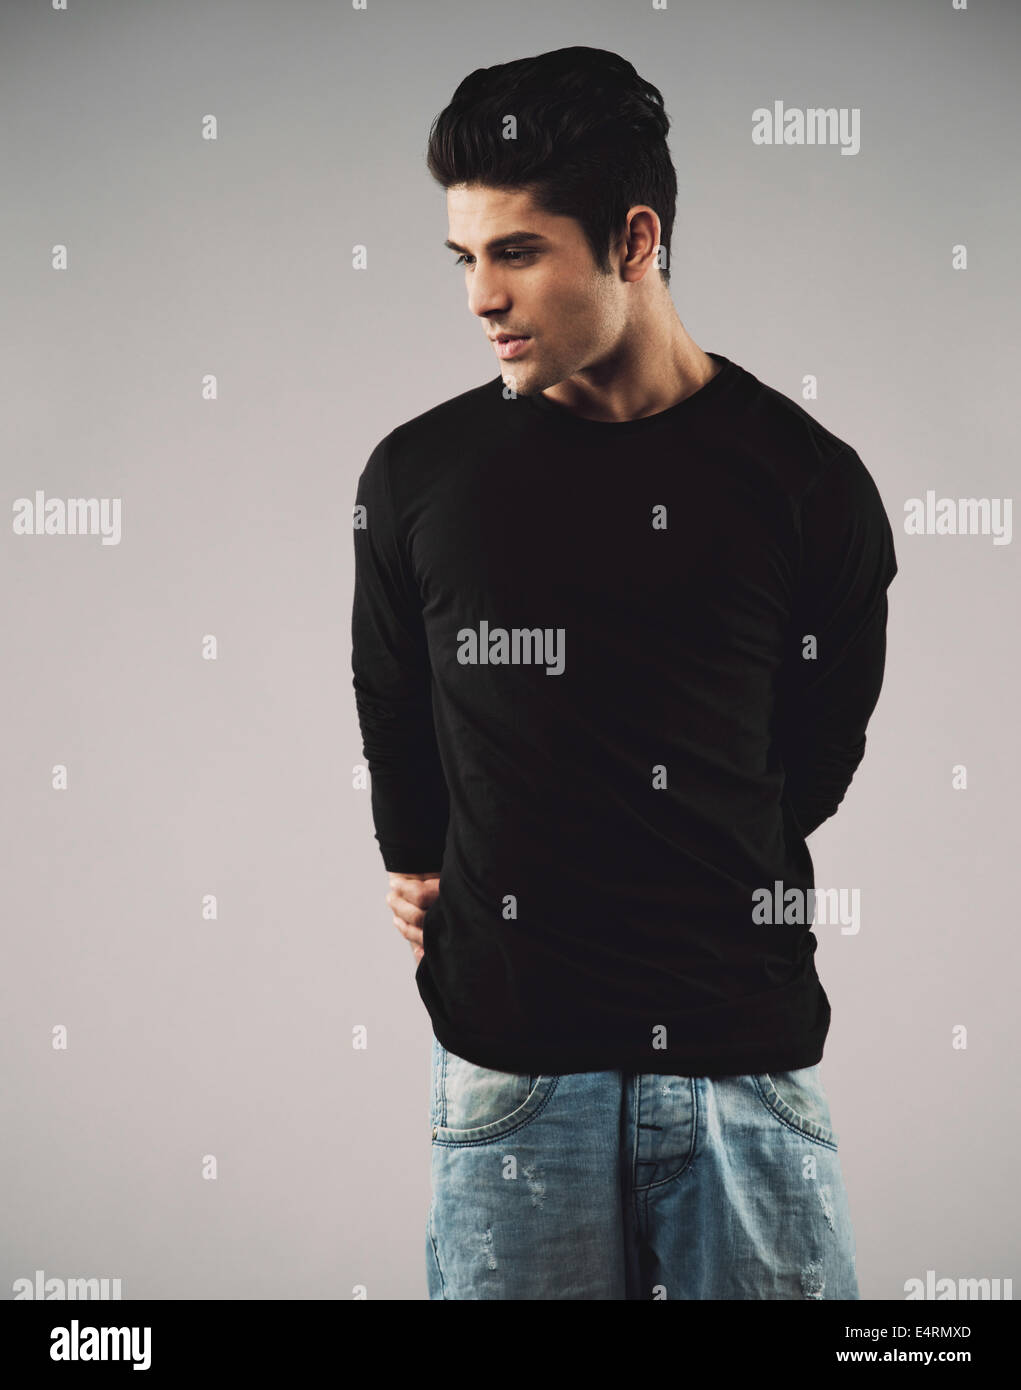 Portrait of young man in casuals looking away at copyspace. Hispanic male model on grey background - Stock Image